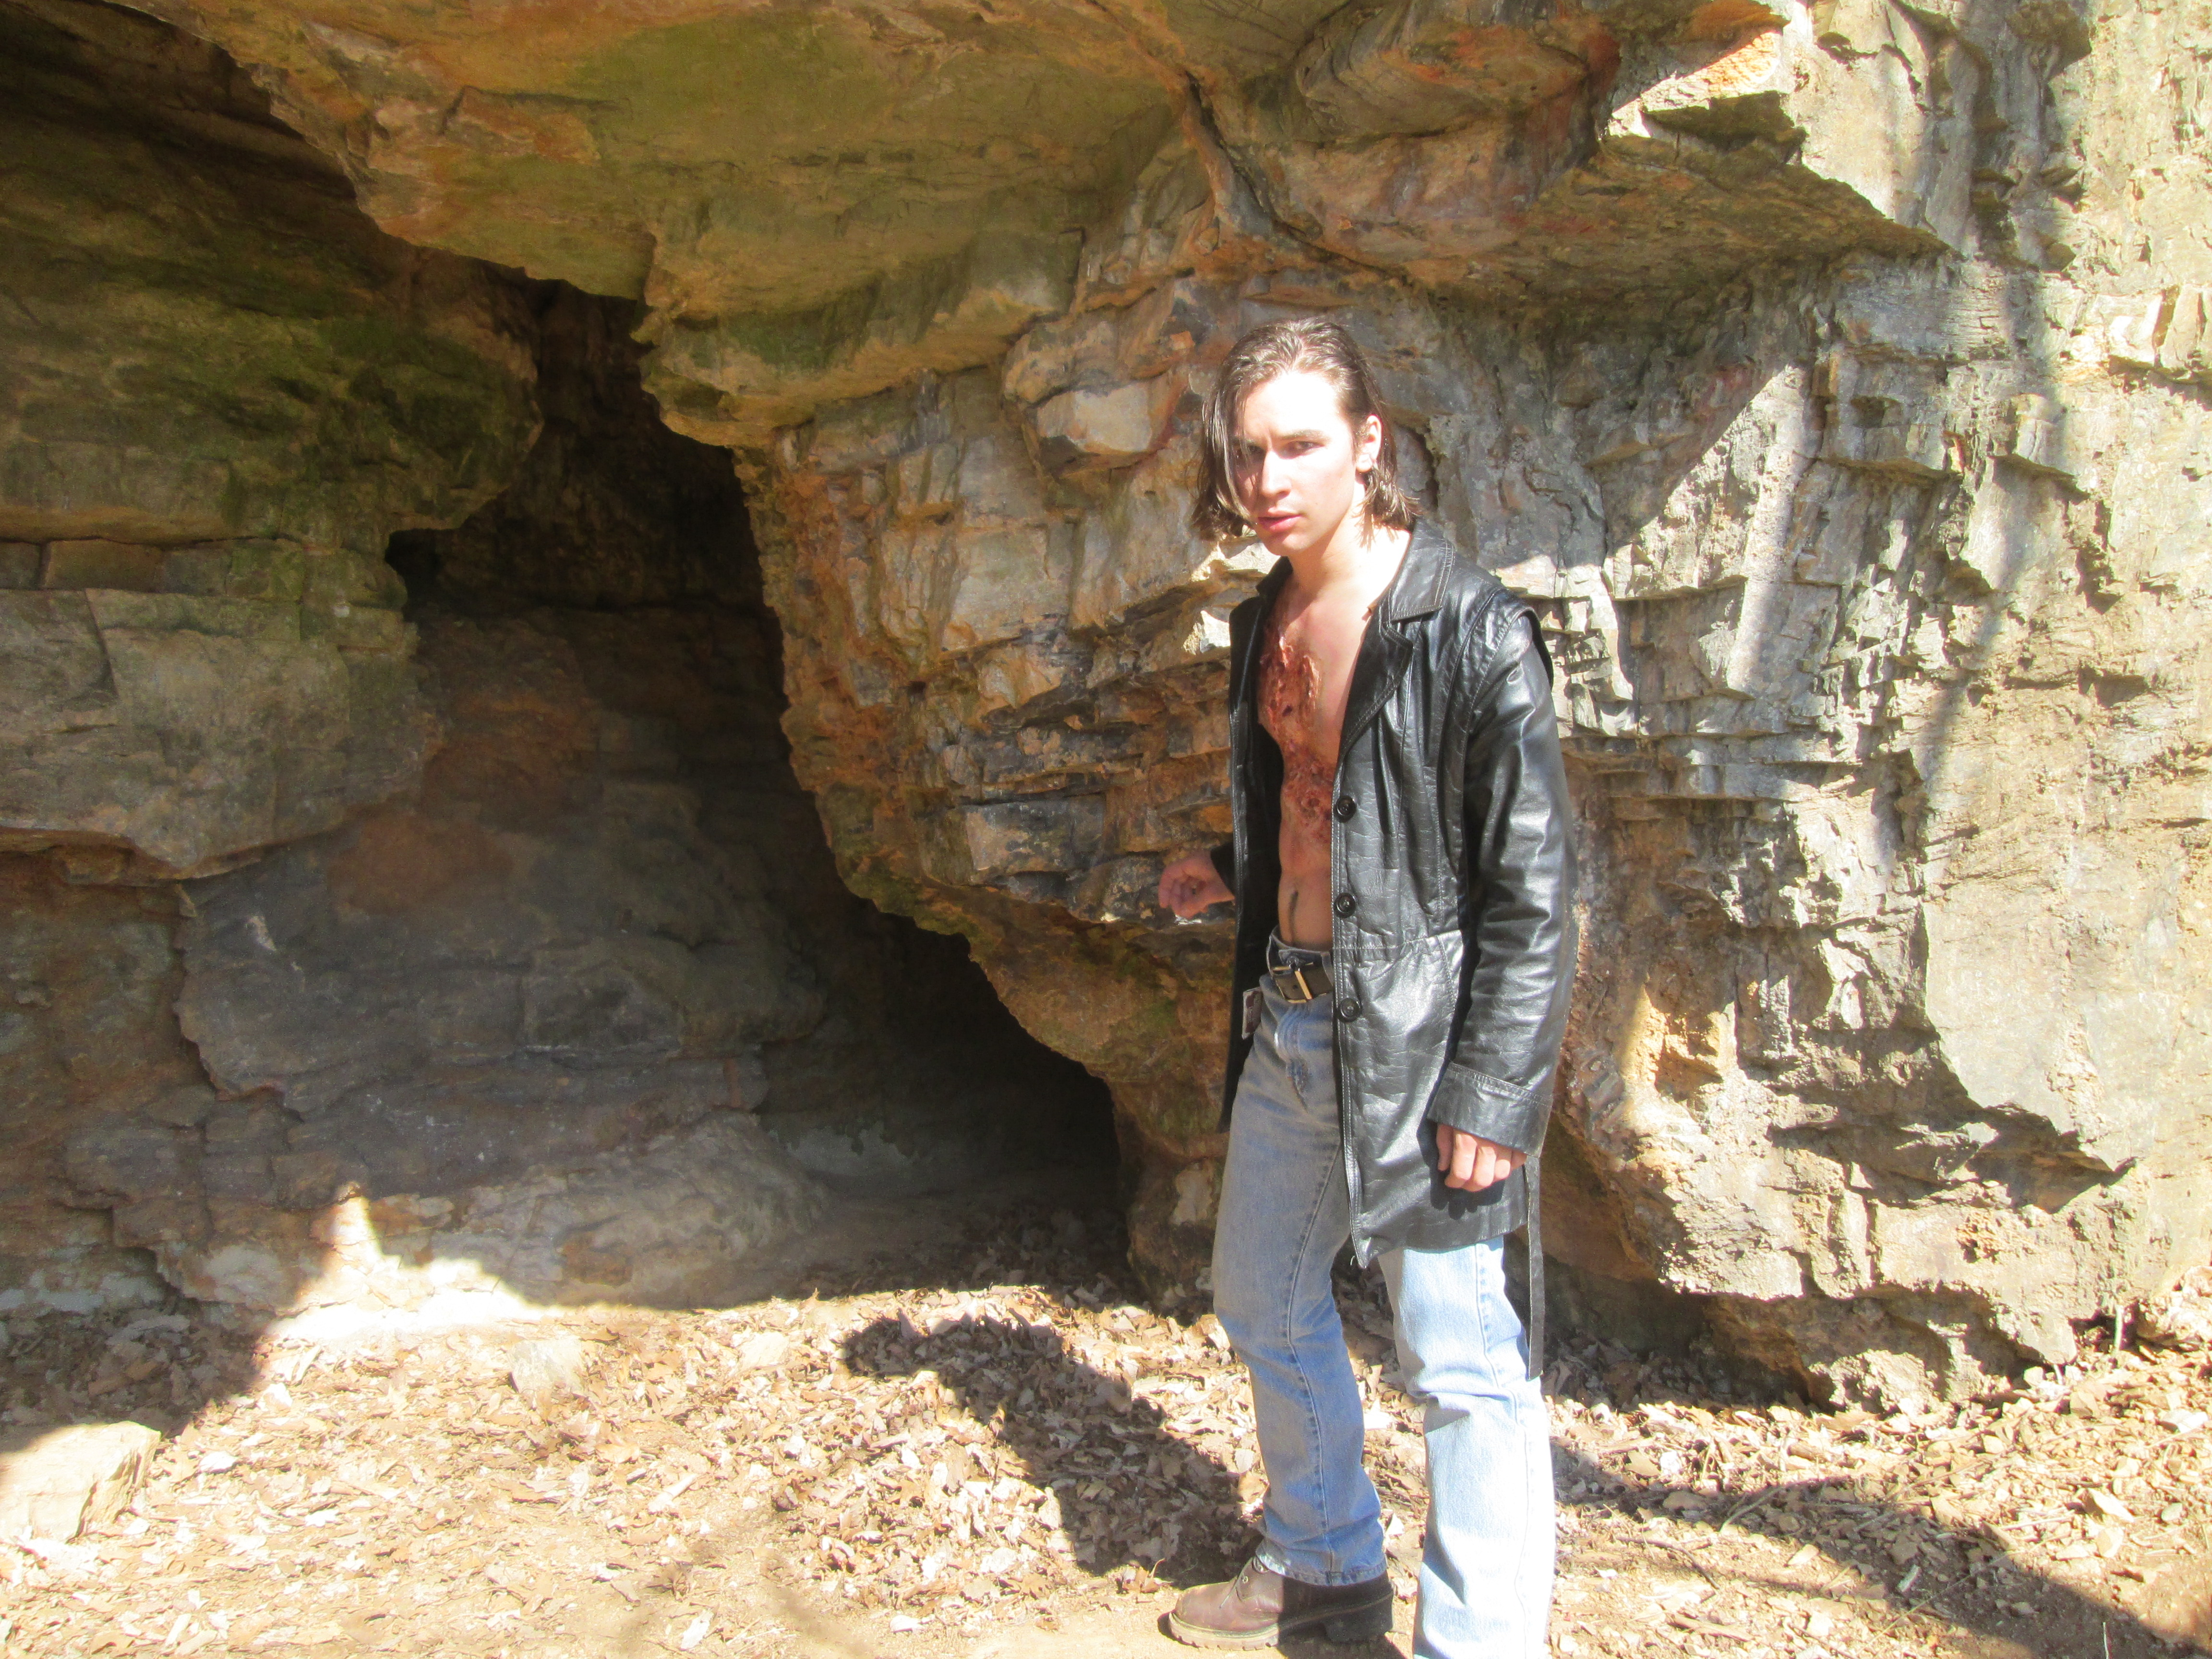 Sam Lukowski, playing Robin, prepares to enter the cave system at Natural Chimneys.